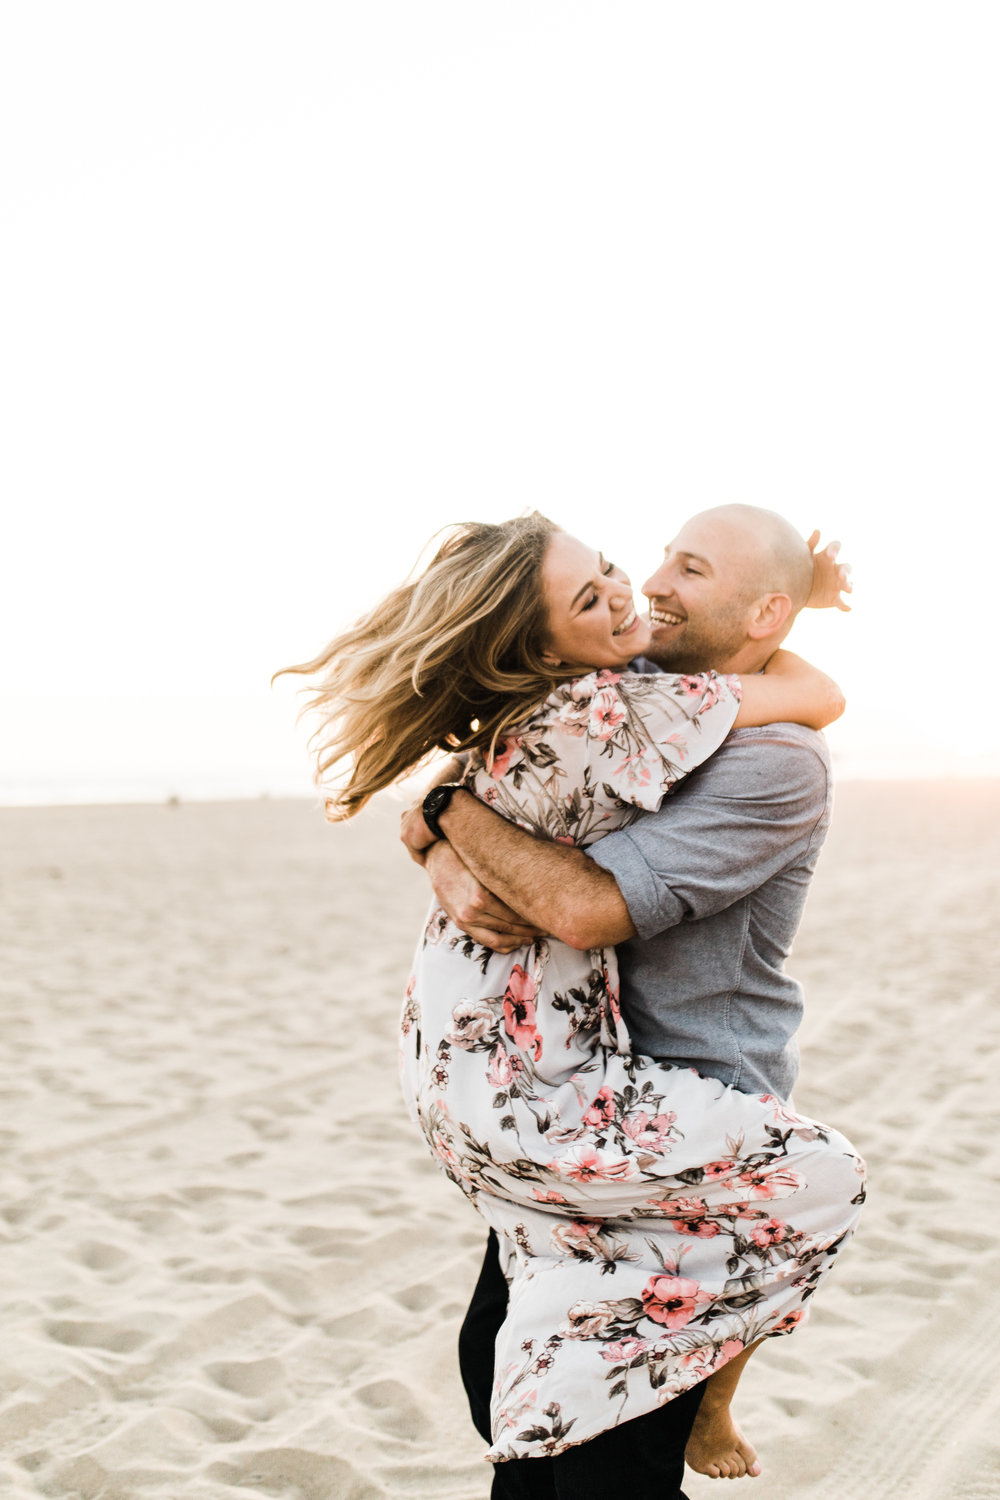 Koleta&Greg-Pacific-City-Huntington-Beach-Engagement-Photos-Clarisse-Rae-Southern-California-Wedding-Photographer_56